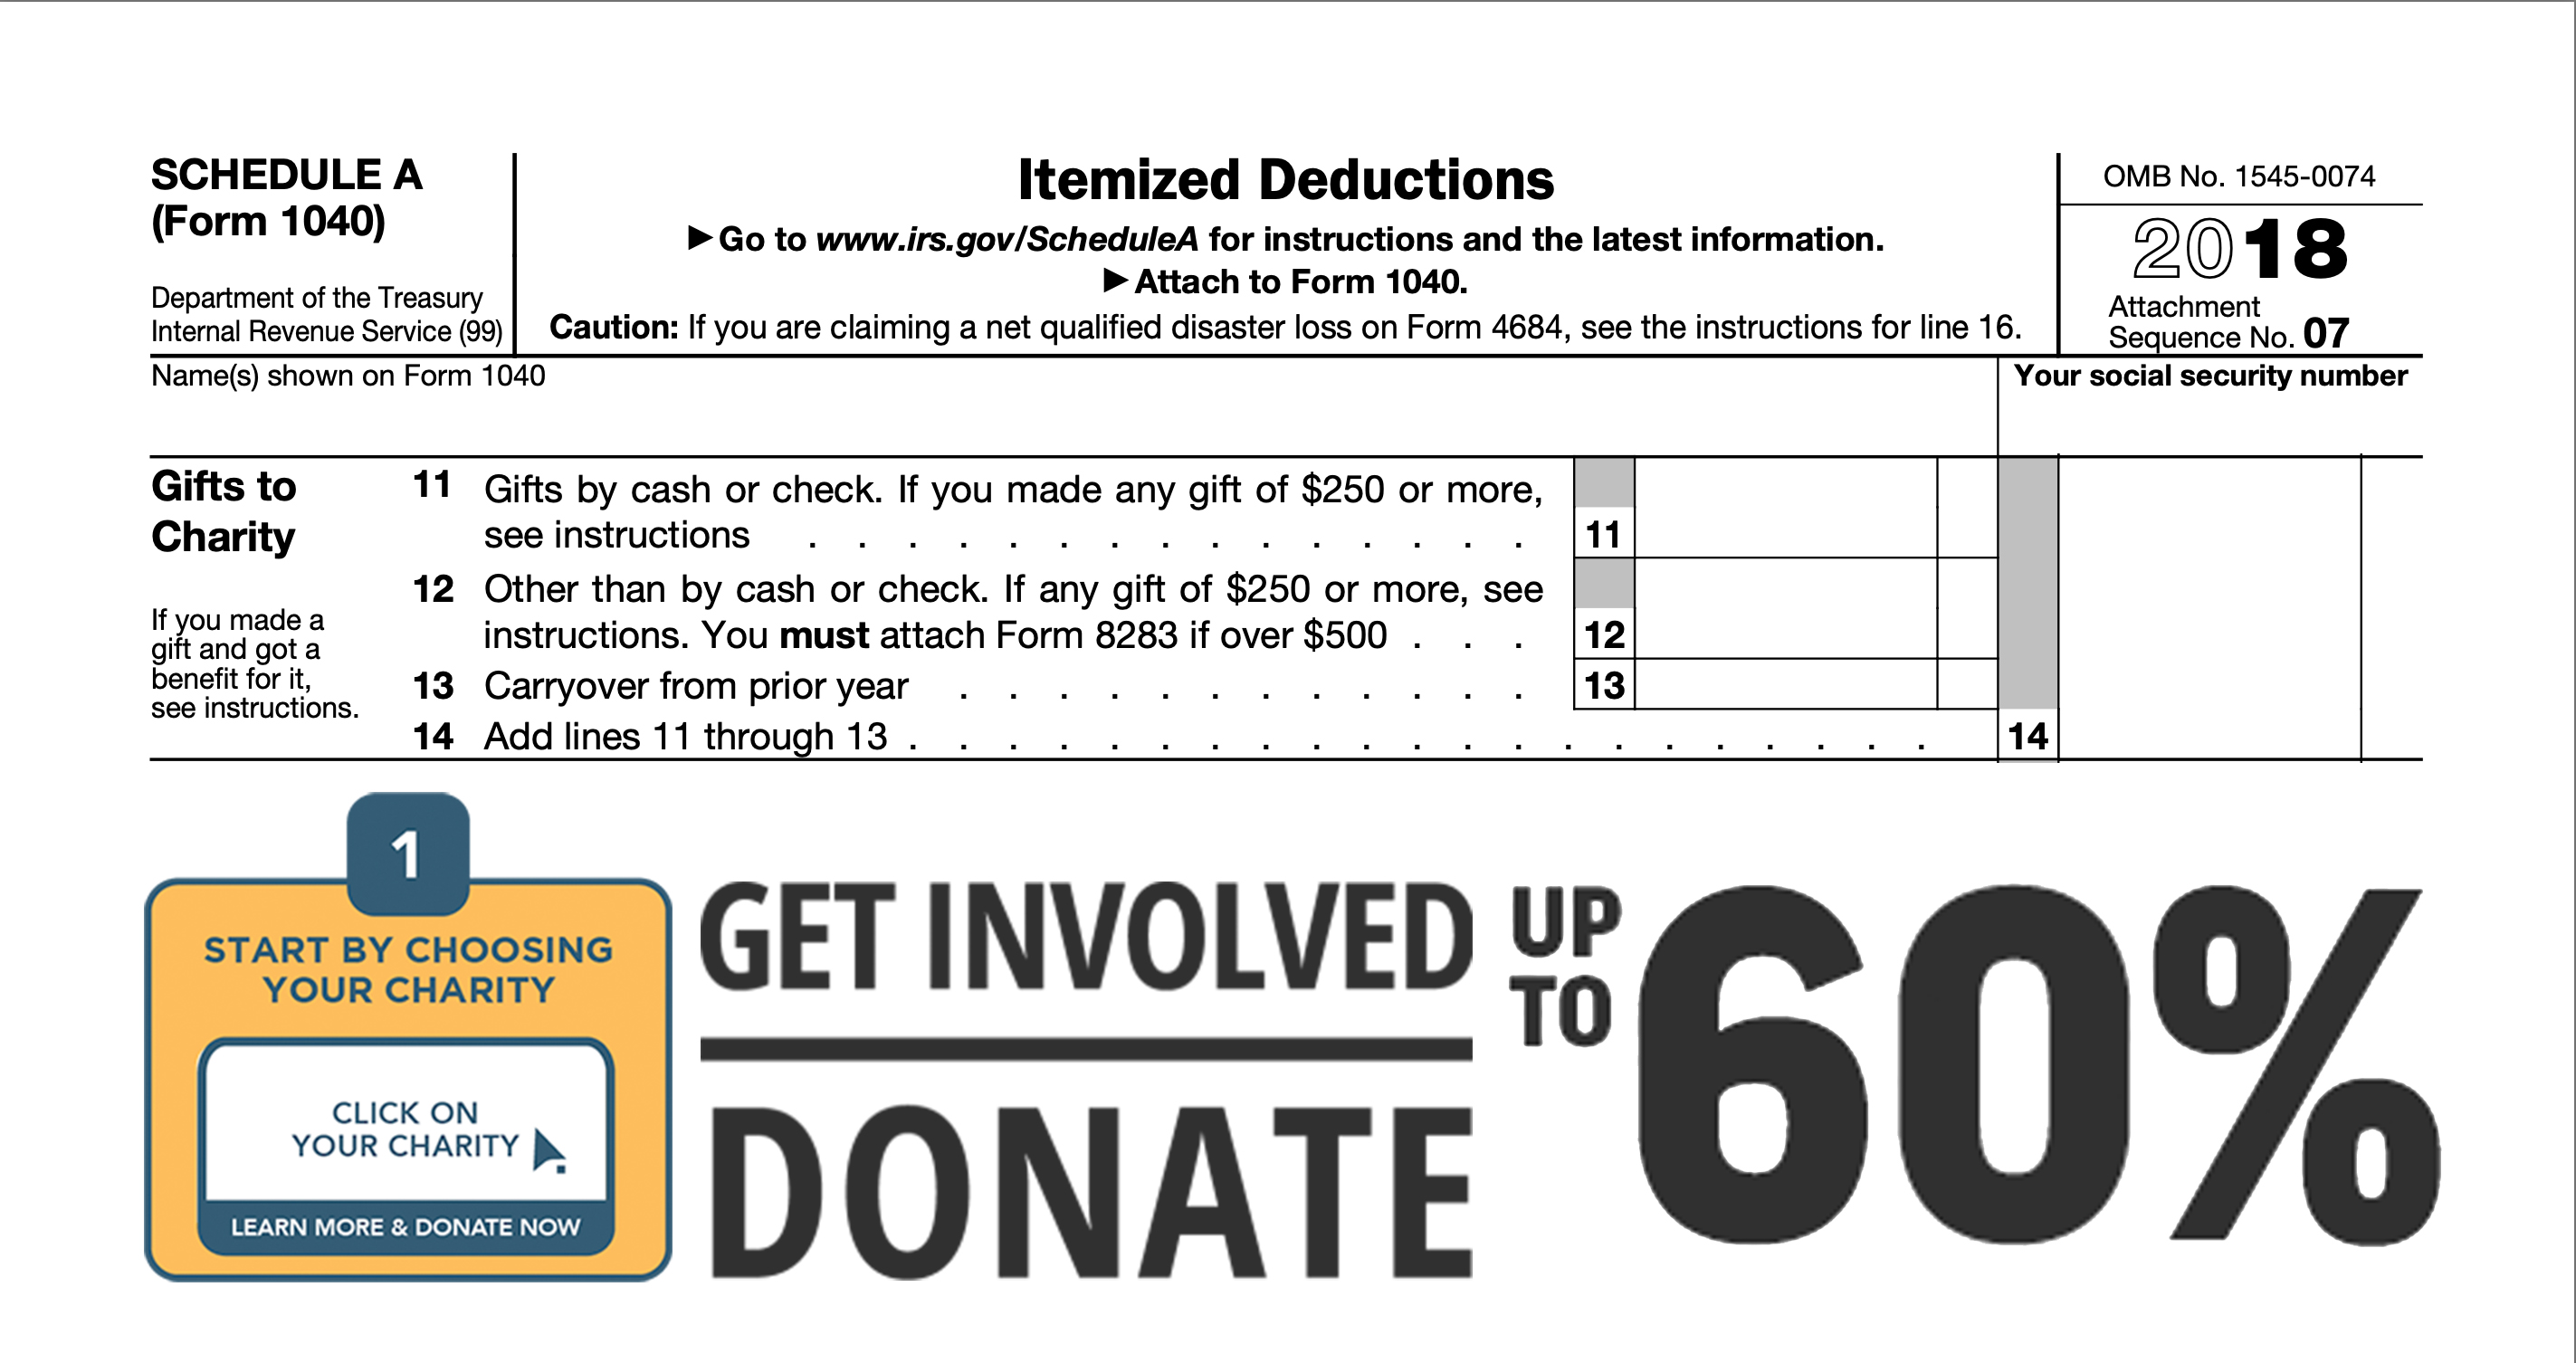 Need Tax Deductions? Create your own 501(c)(3) organization  Donate 60%!